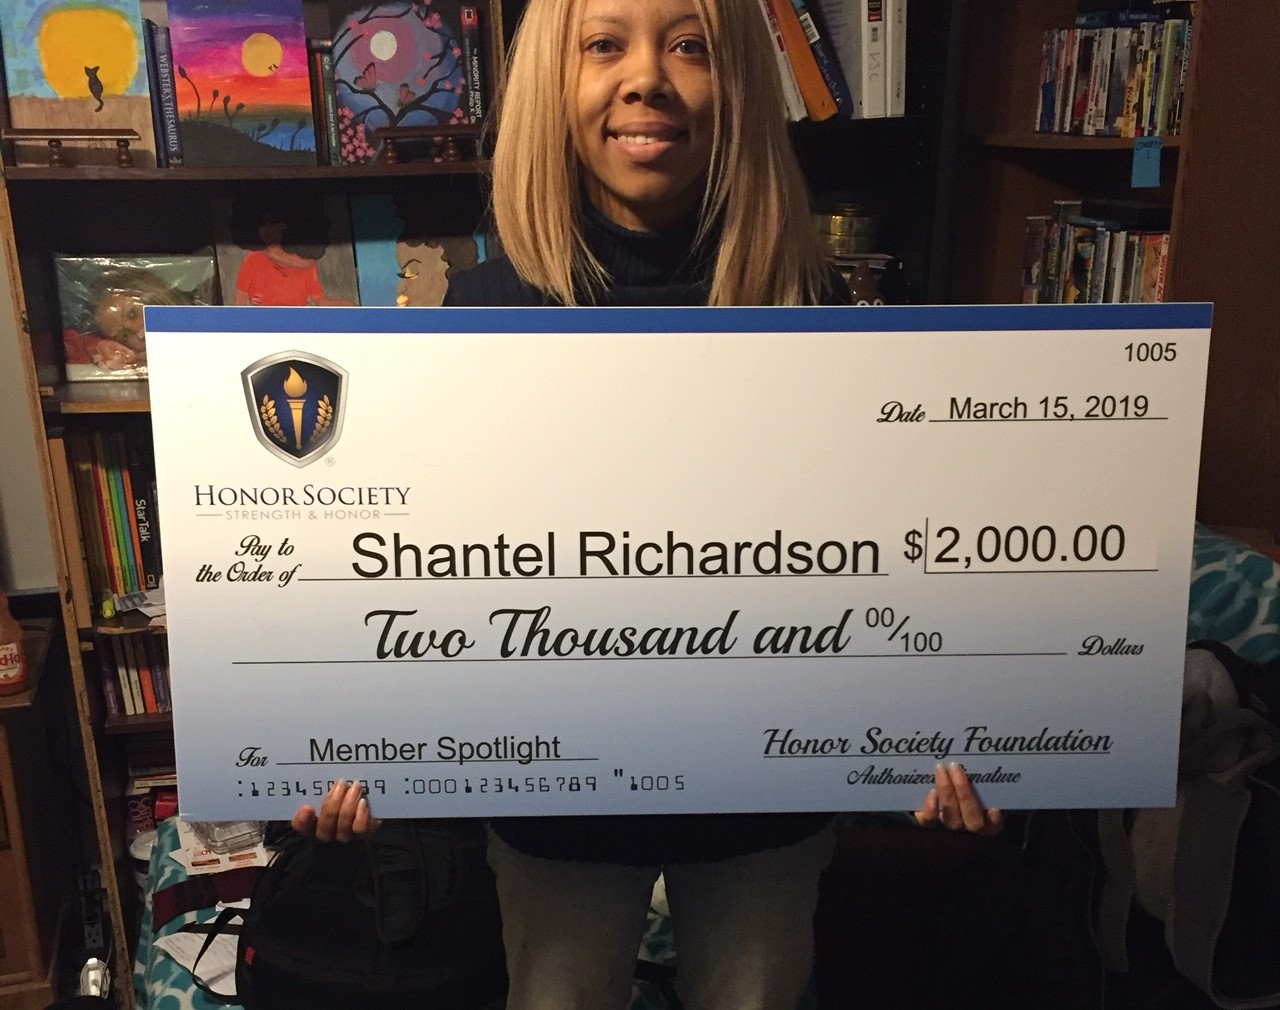 Shantal Richardson is the recipient of the Honor Society Foundation $2,000 Member spotlight recipient.